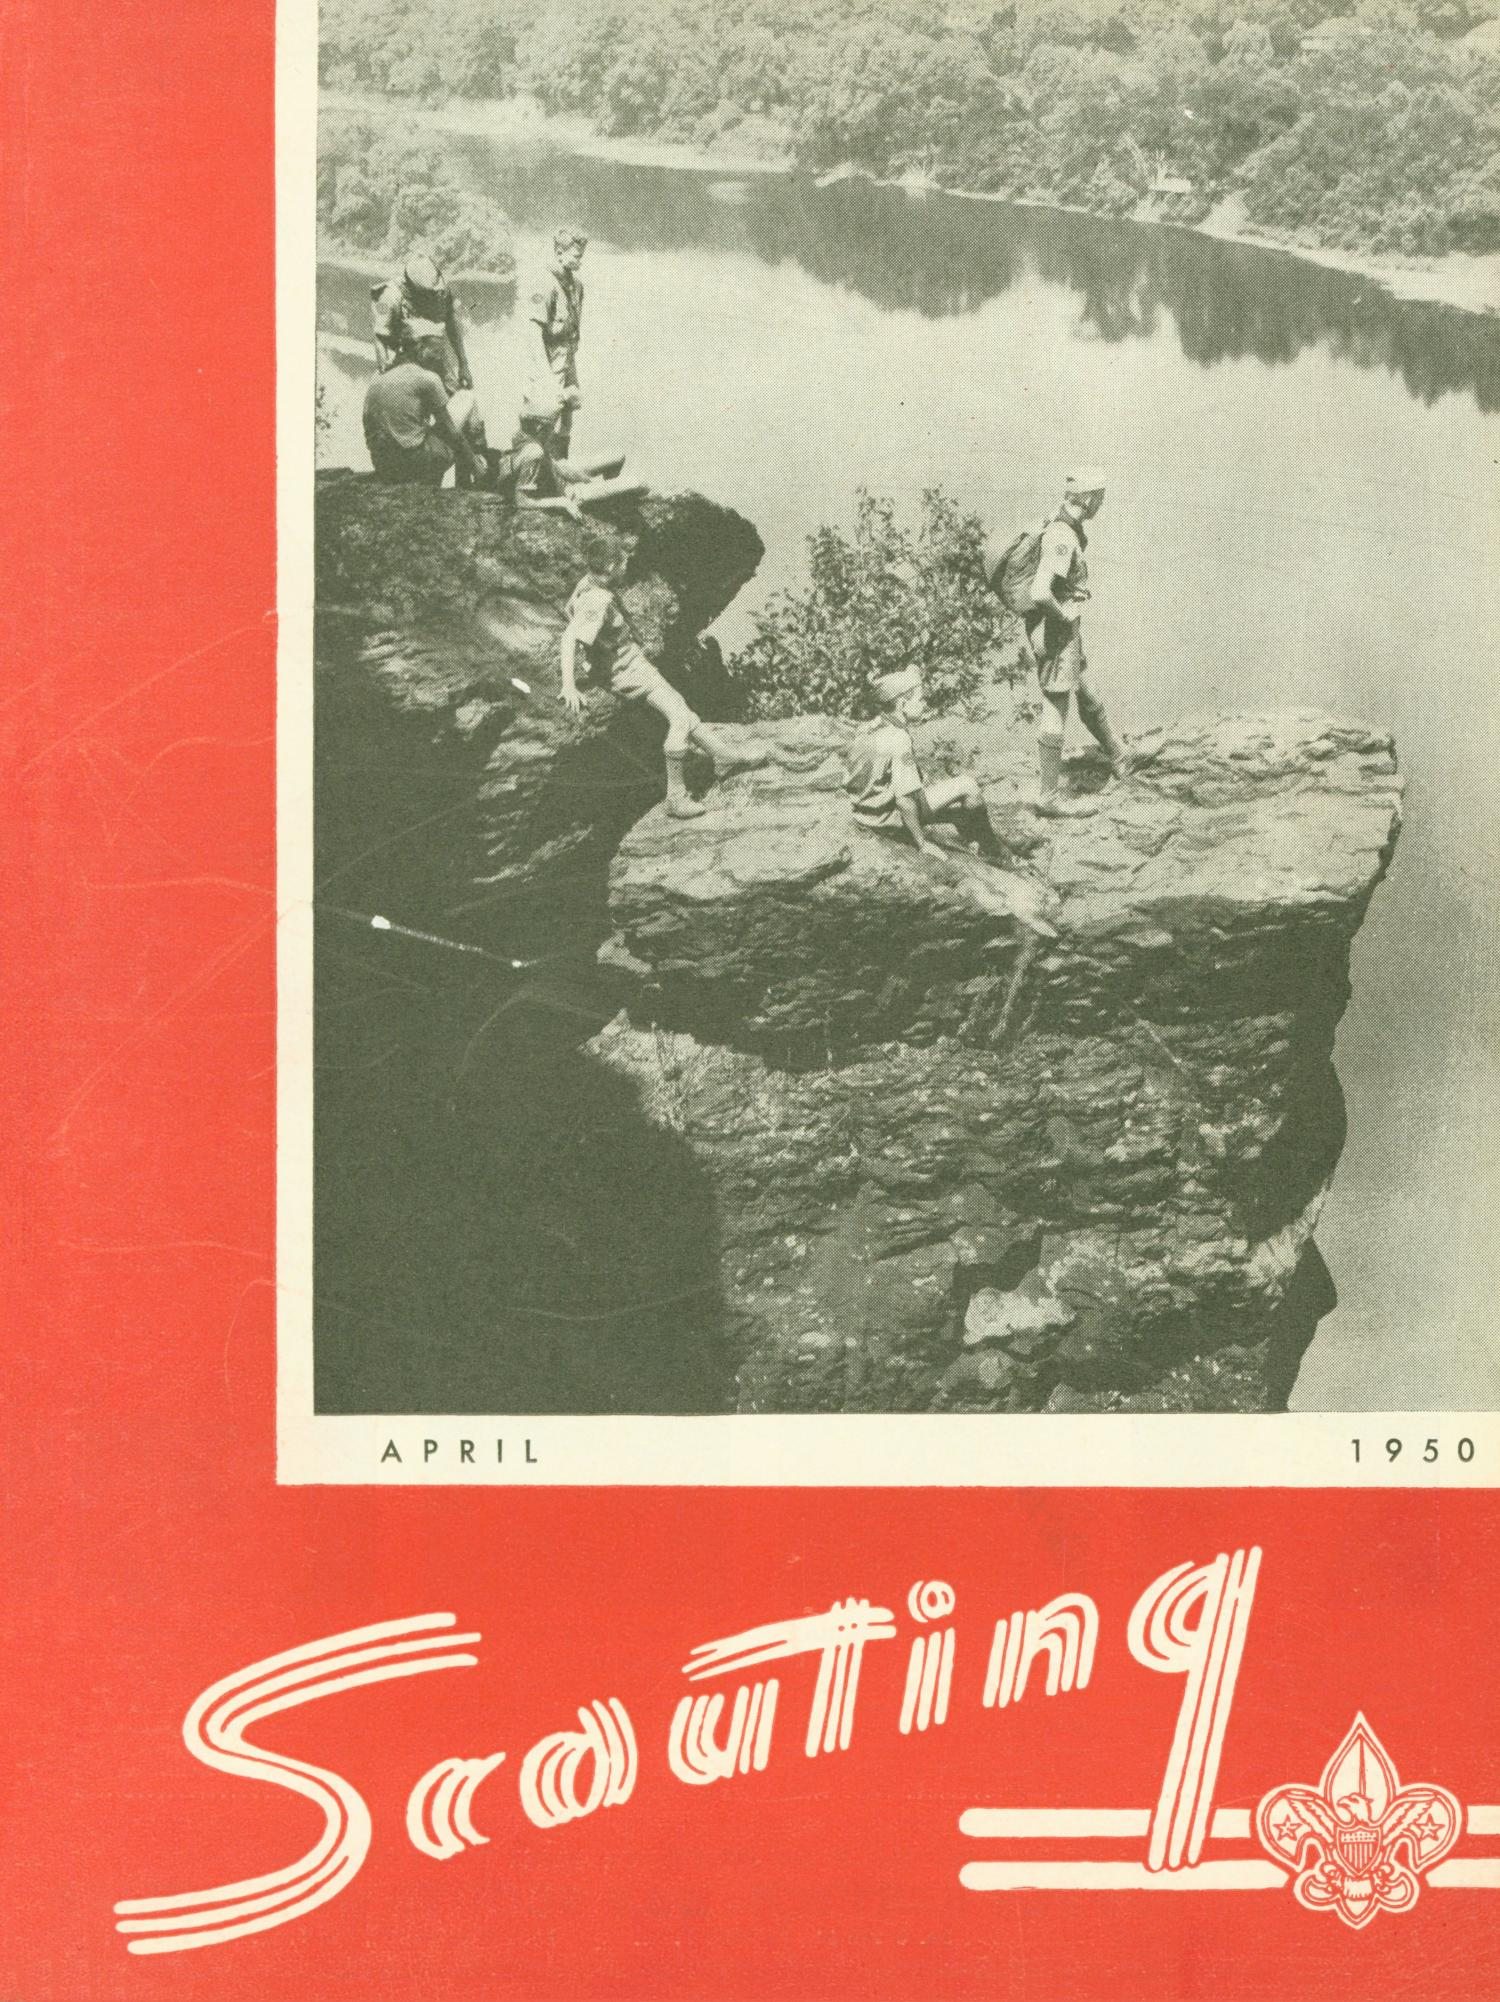 Scouting, Volume 38, Number 4, April 1950                                                                                                      Front Cover